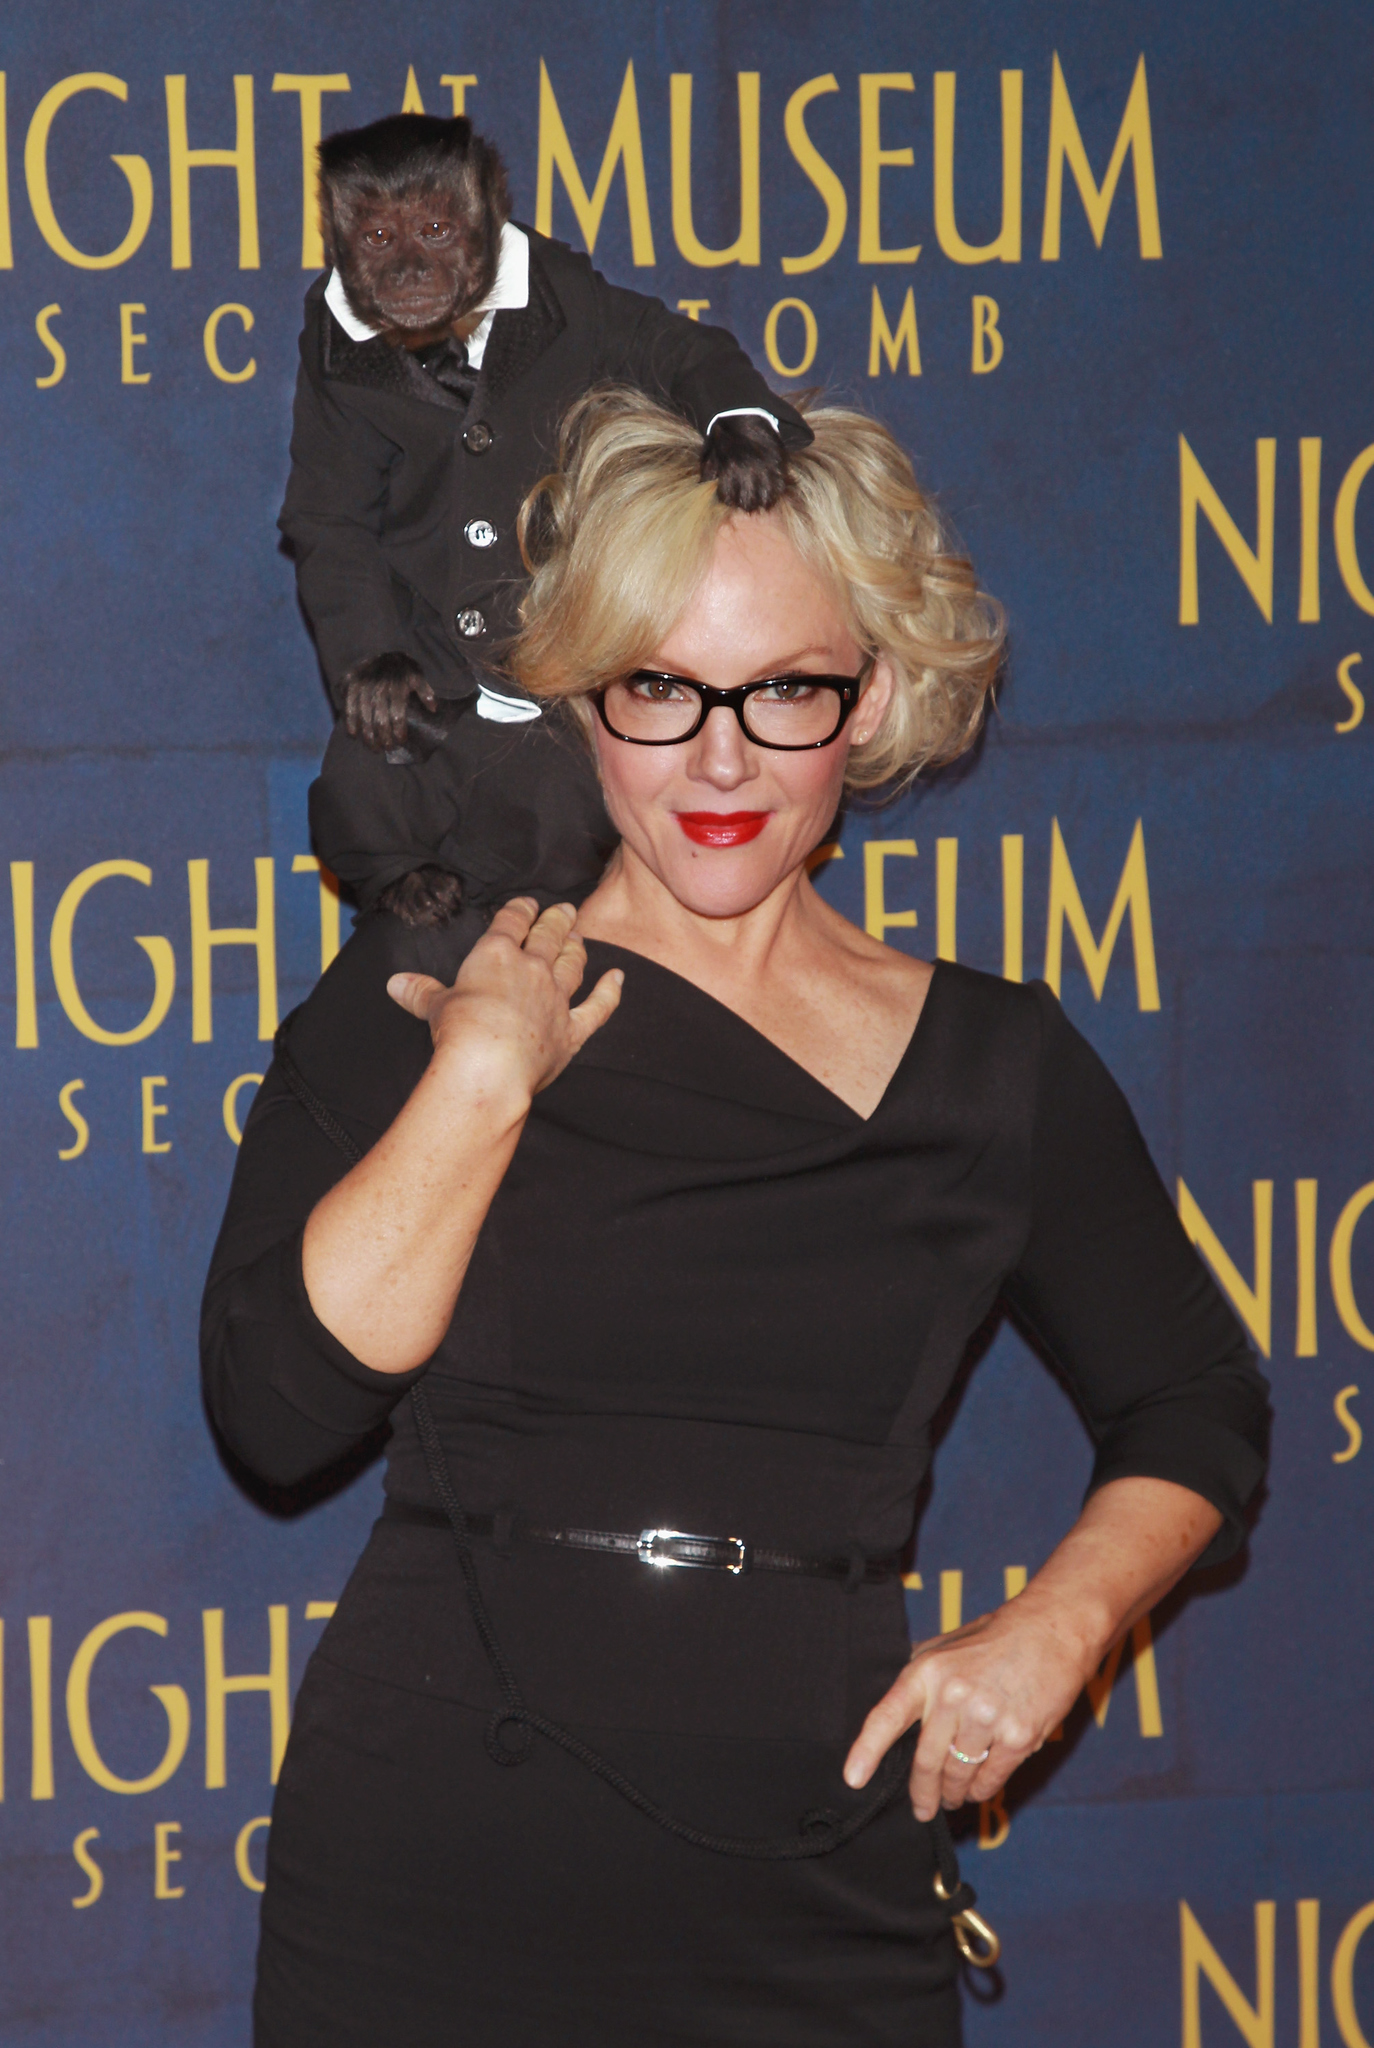 Rachael Harris at an event for Night at the Museum: Secret of the Tomb (2014)